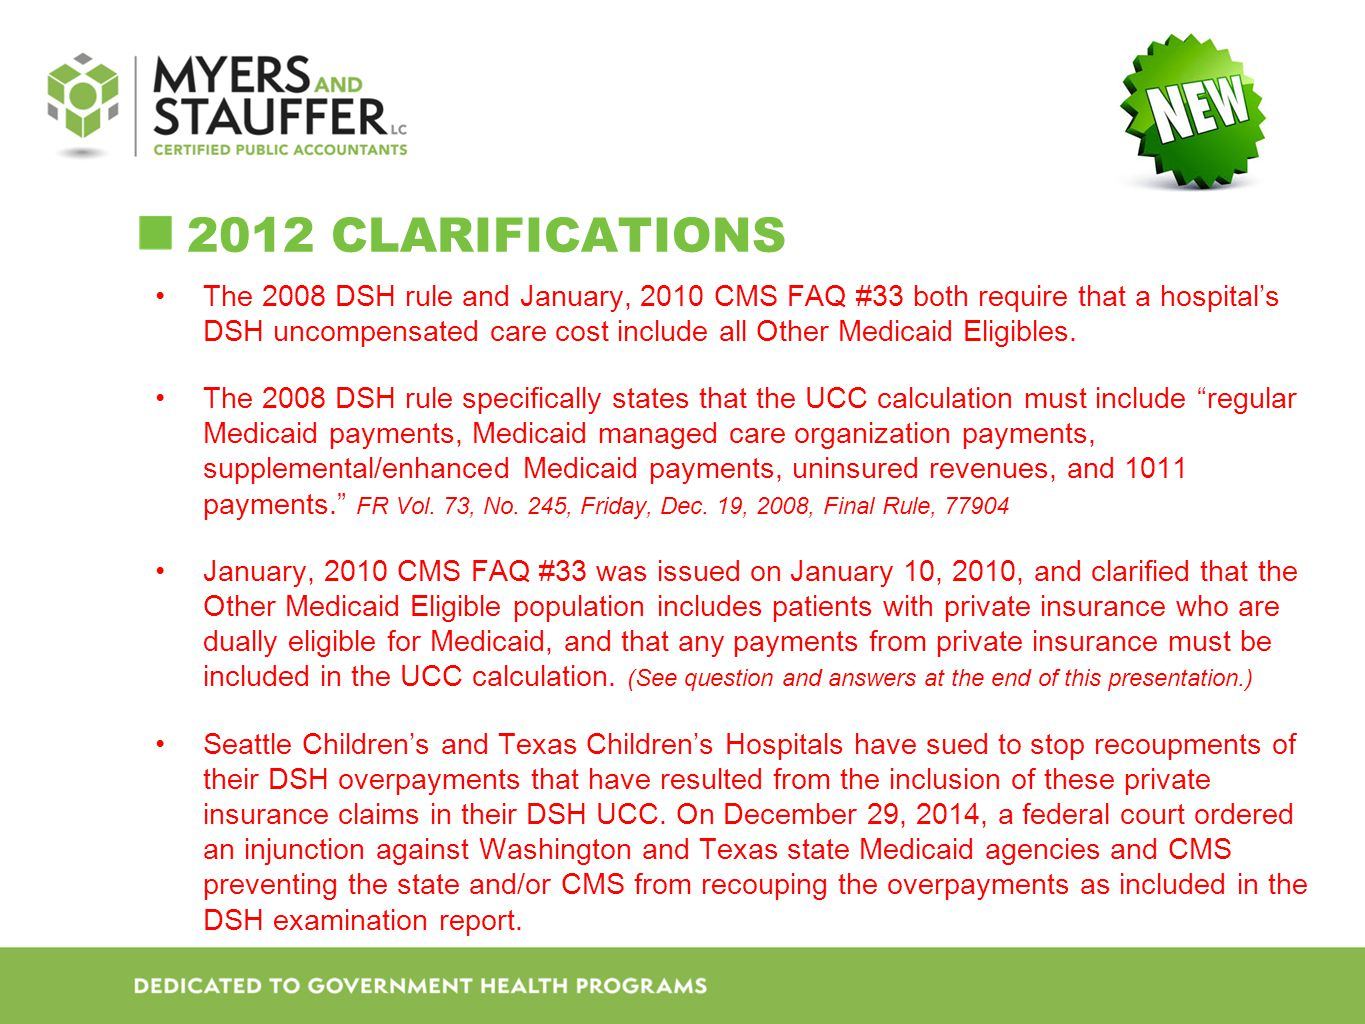 2012 CLARIFICATIONS The 2008 DSH rule and January, 2010 CMS FAQ #33 both require that a hospital's DSH uncompensated care cost include all Other Medicaid Eligibles.